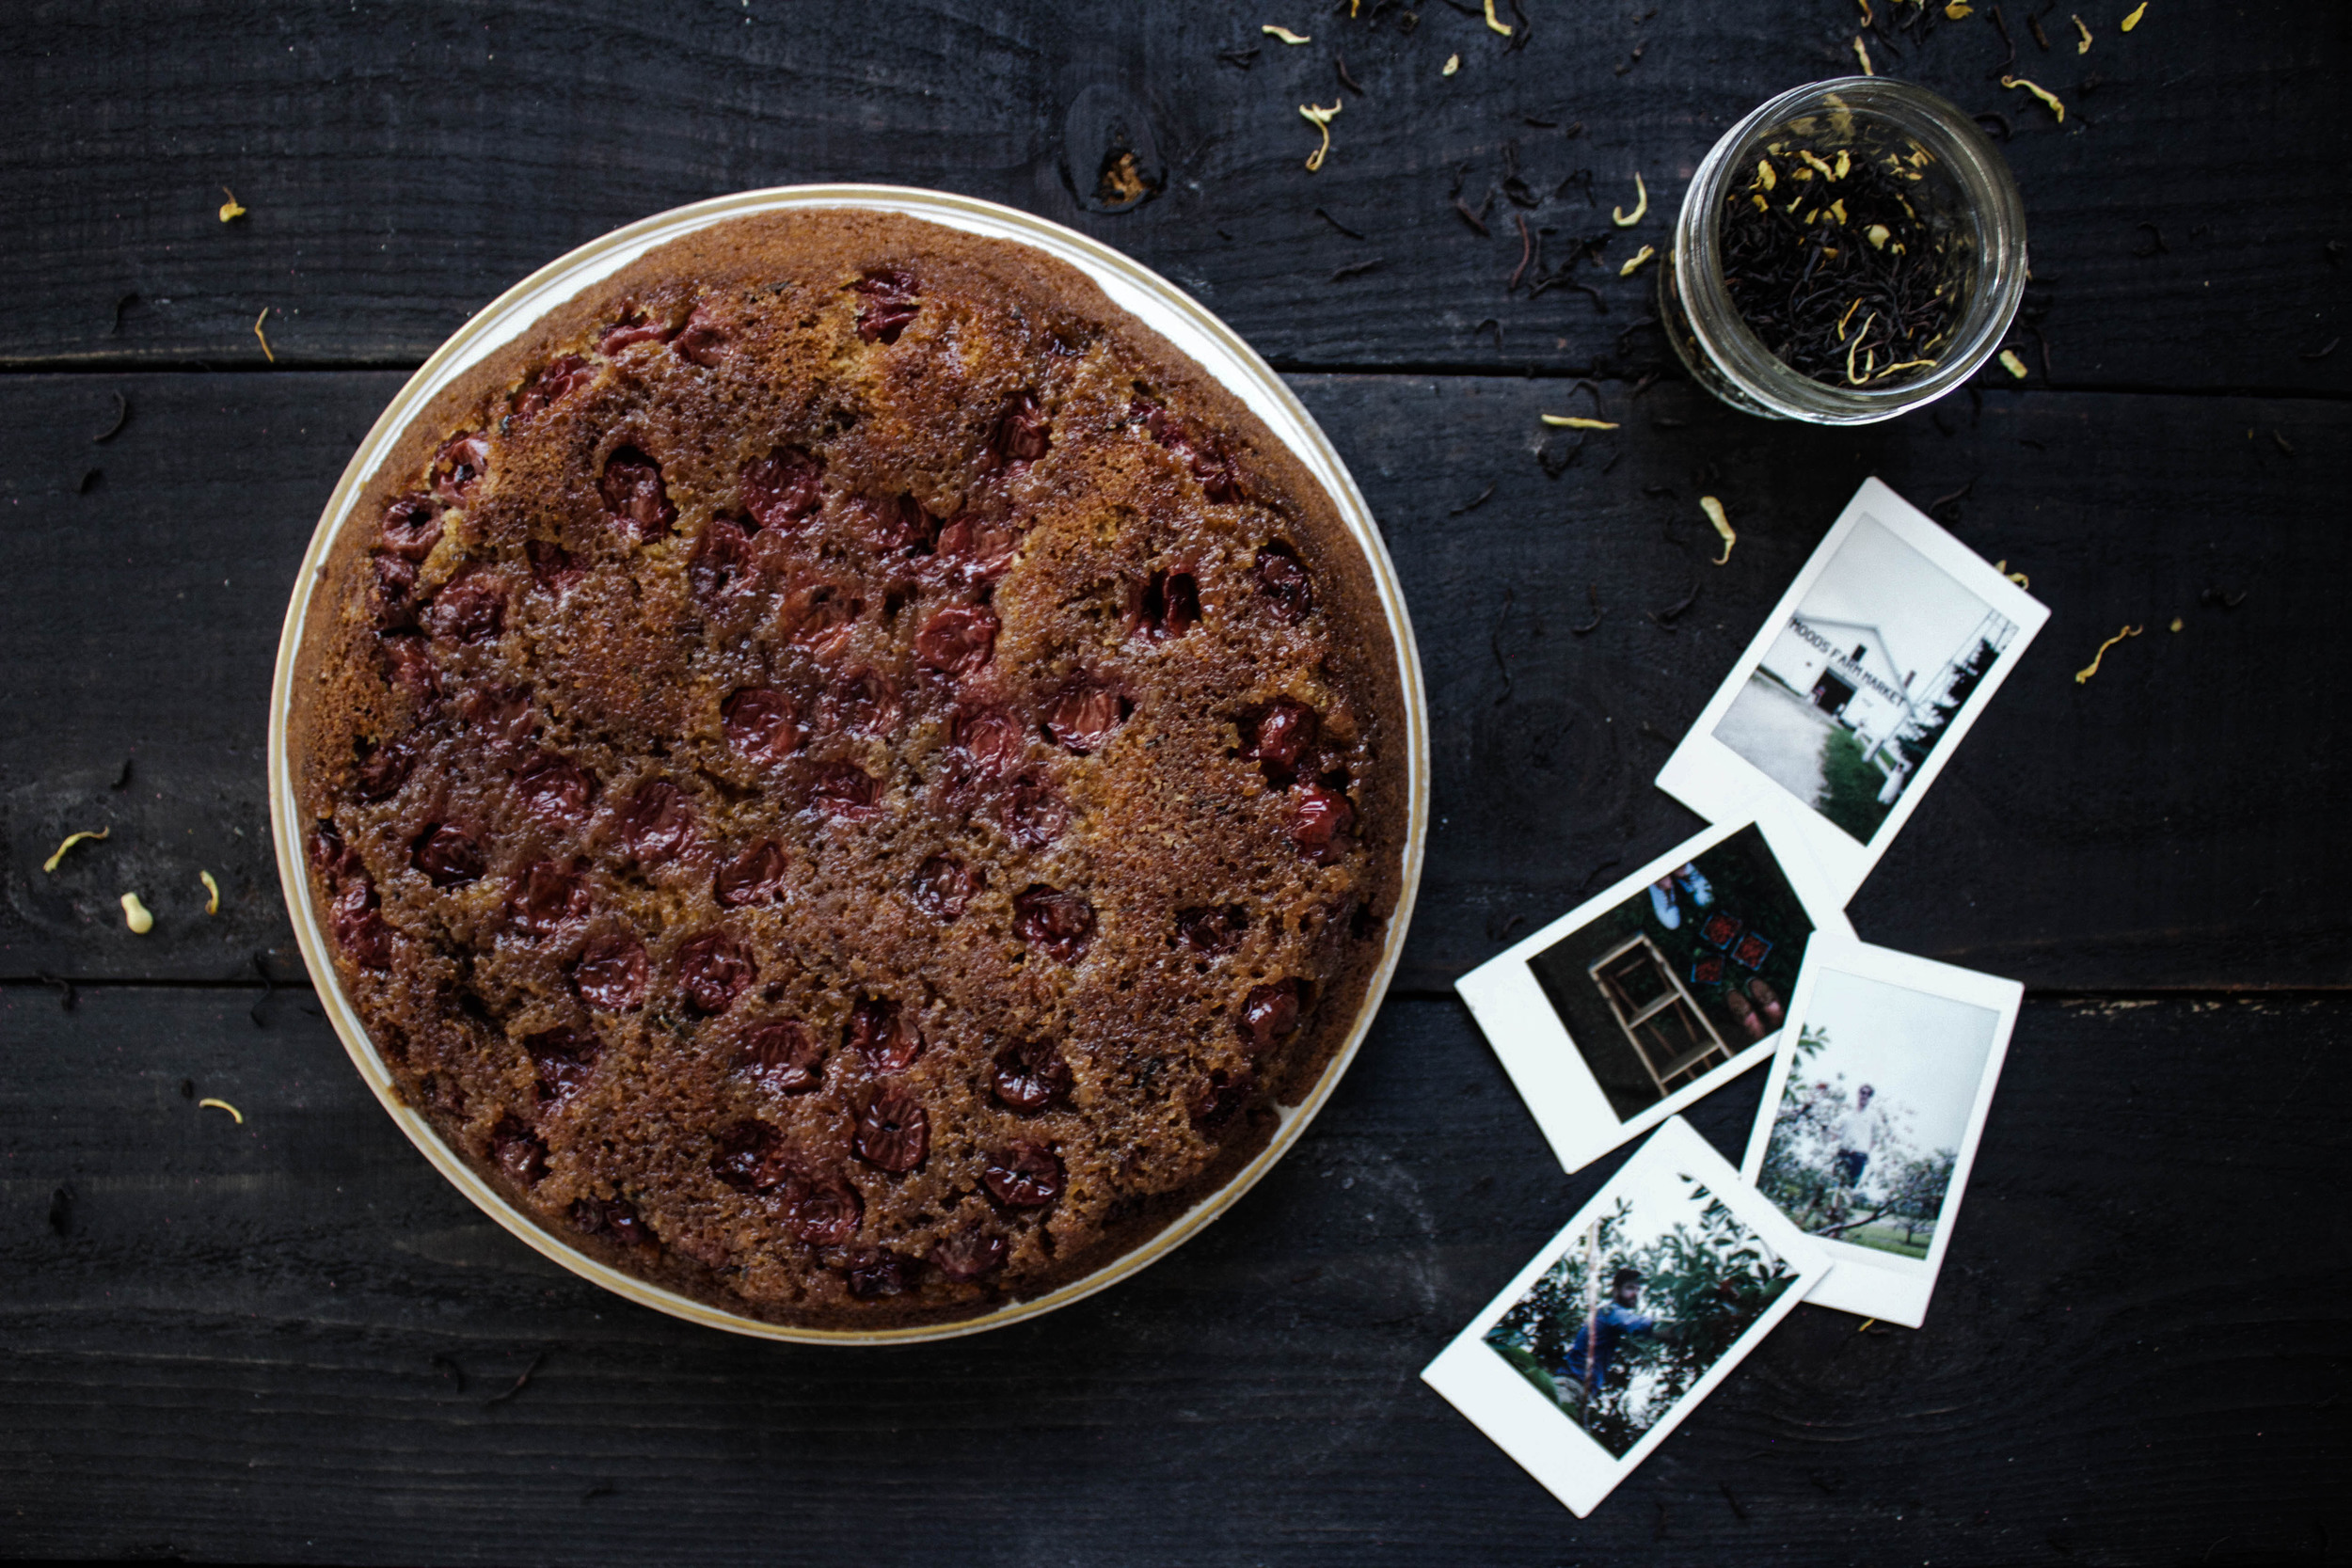 Black Tea and Almond Cherry-Upside Down Cake